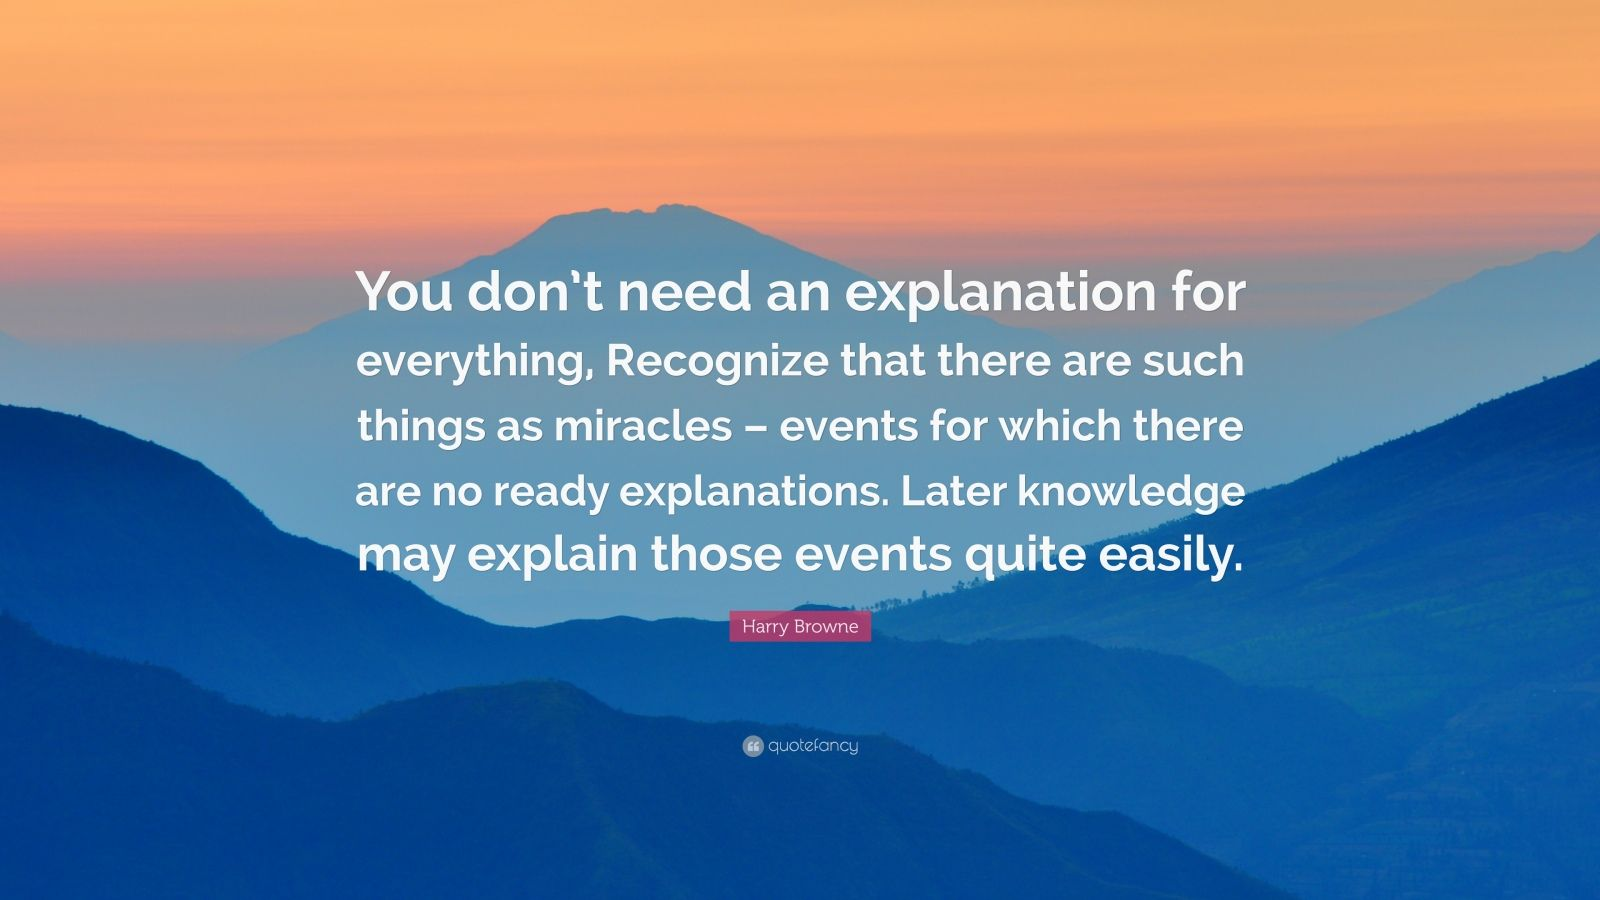 """Harry Browne Quote: """"You don't need an explanation for everything, Recognize that there are such things as miracles – events for which there are no ready explanations. Later knowledge may explain those events quite easily."""""""